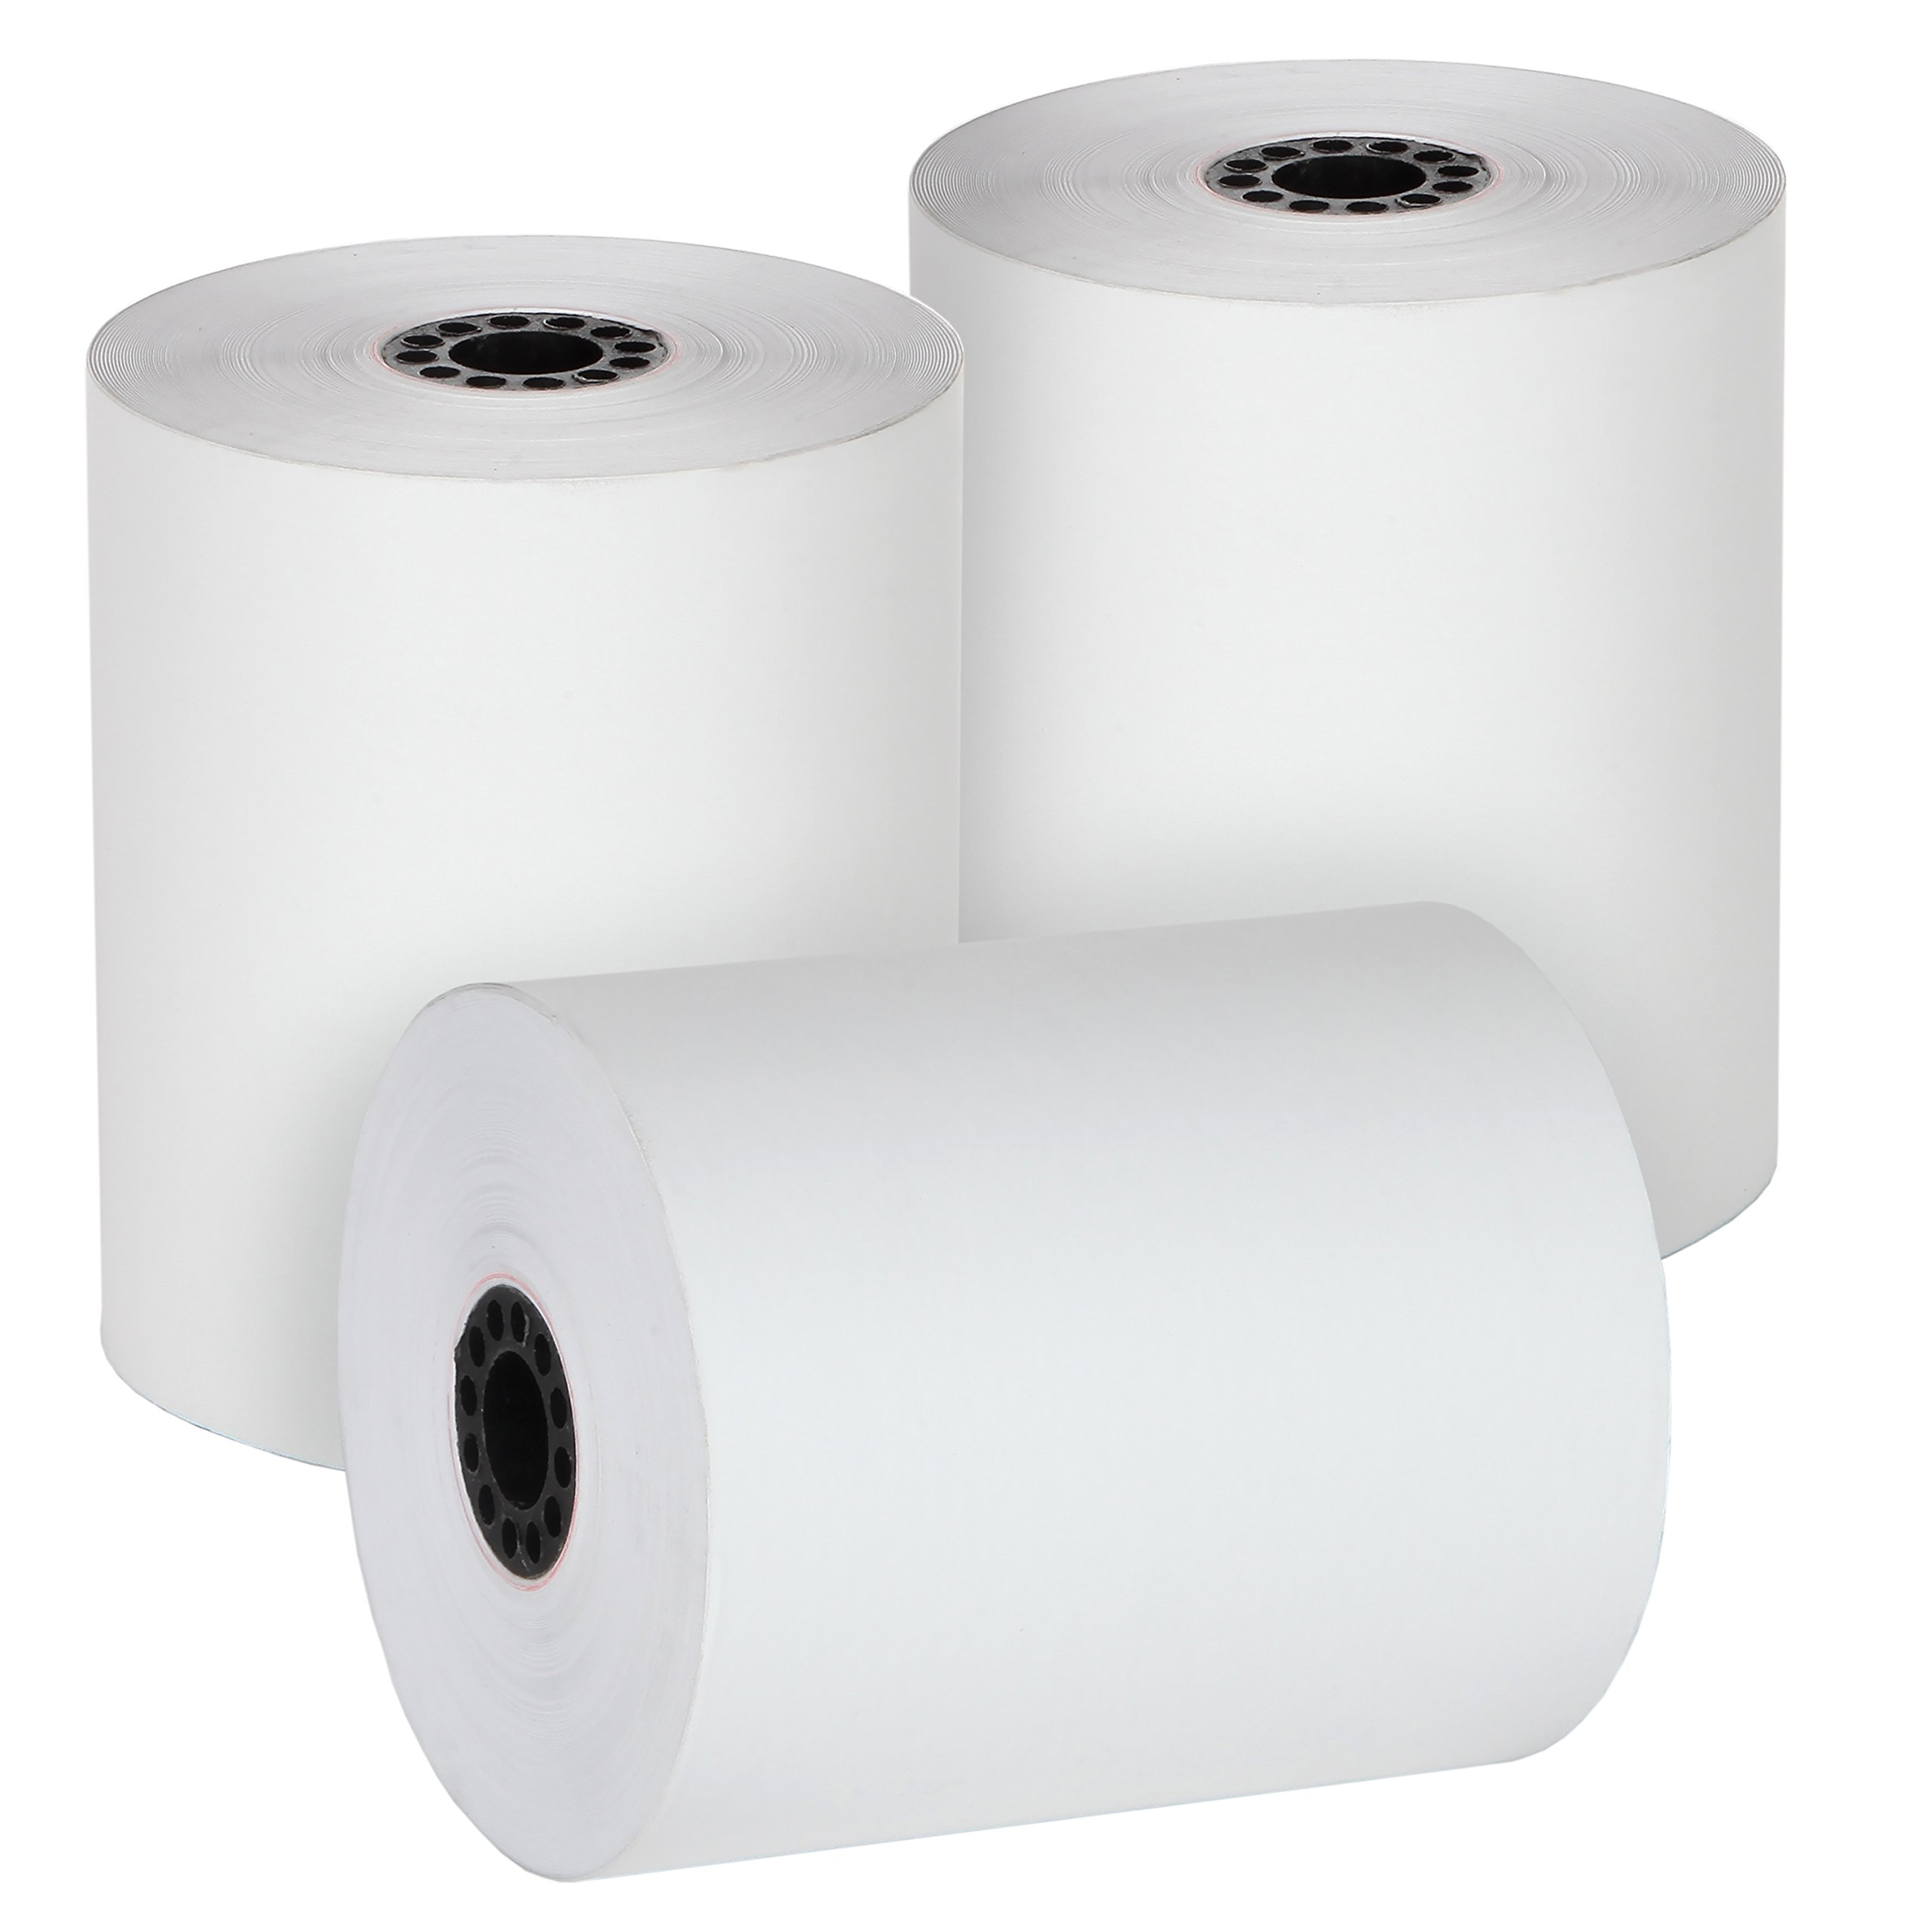 Freccia Rossa Market, Thermal Receipt Paper, 3-1/8'' X 230' POS Register Rolls - (32 Pack)